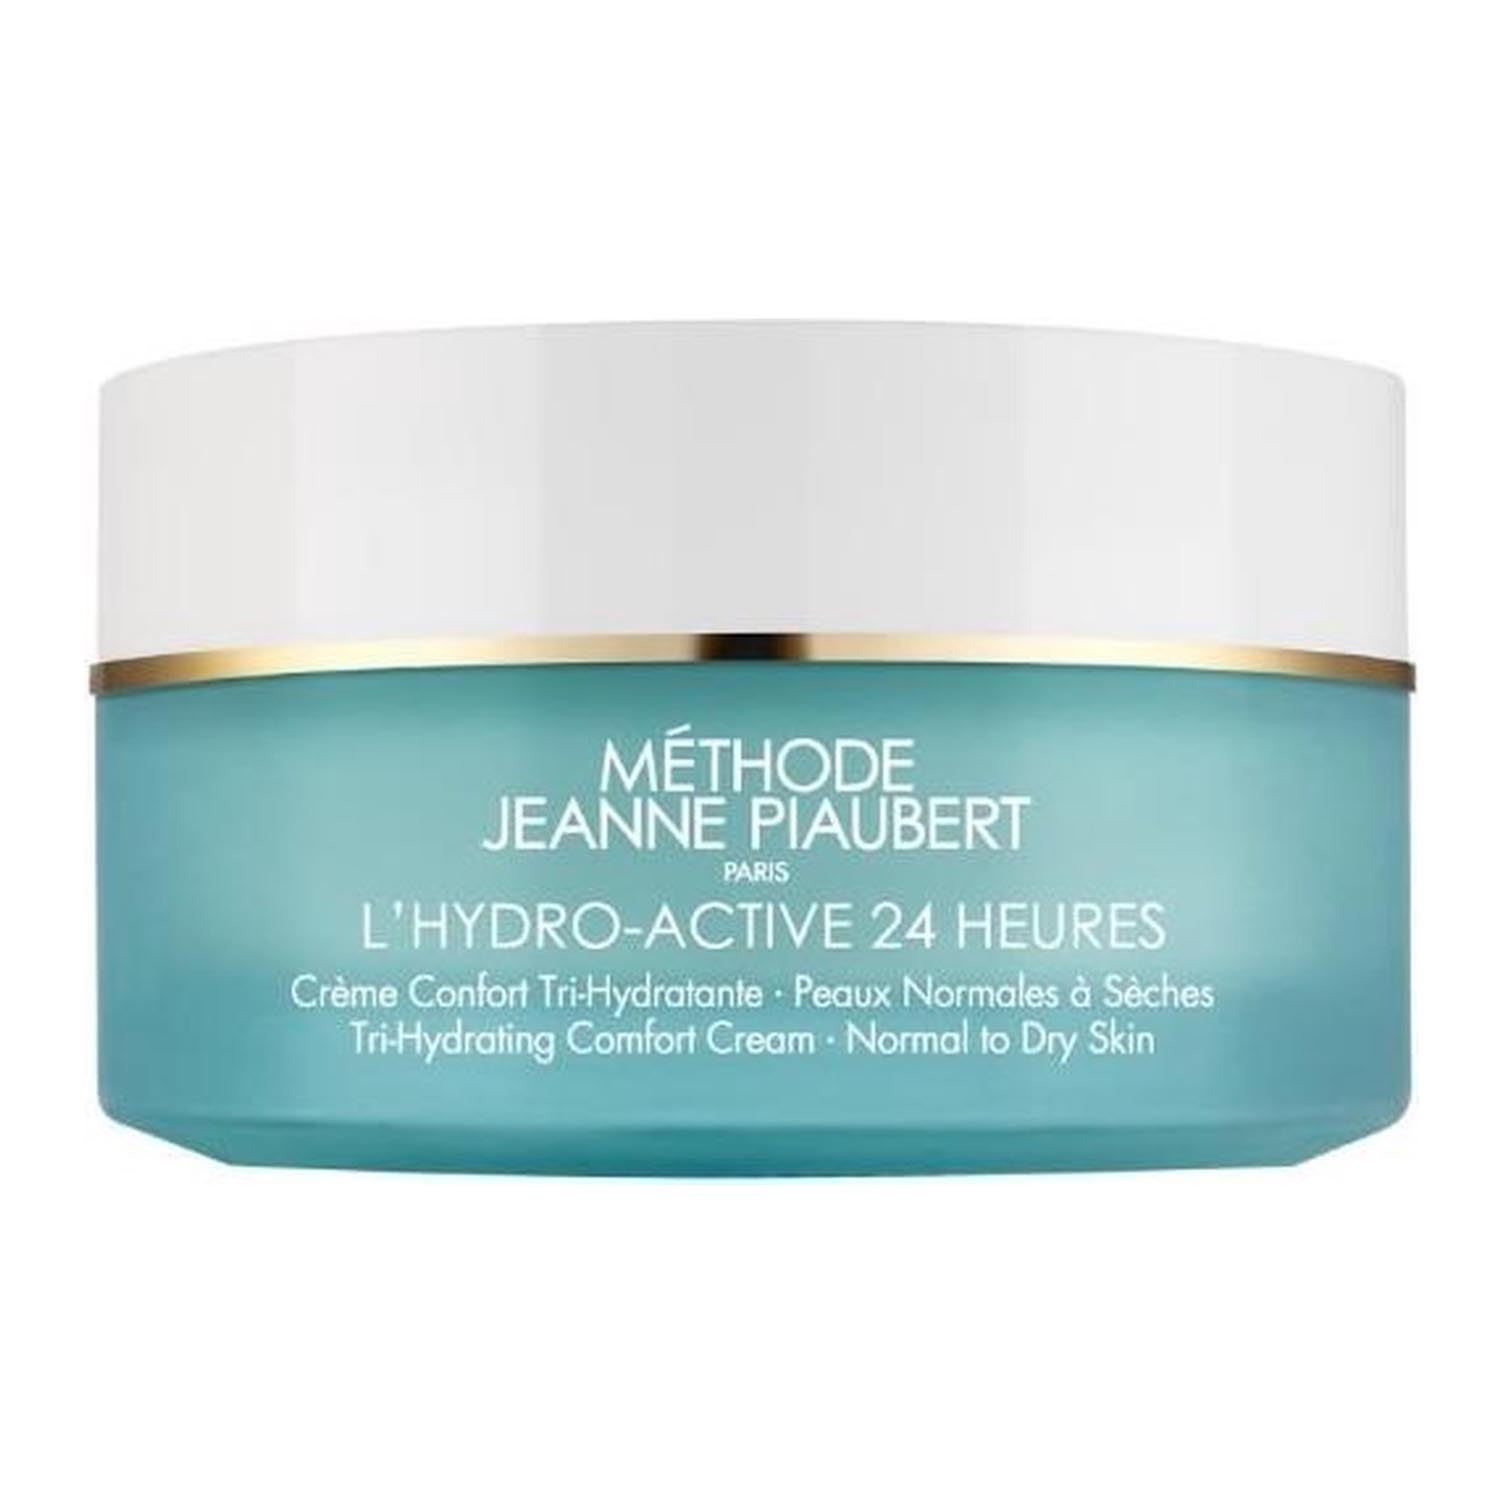 Jeanne piaubert l hydro active 24h moisturizing face cream normal to dry skin 50ml